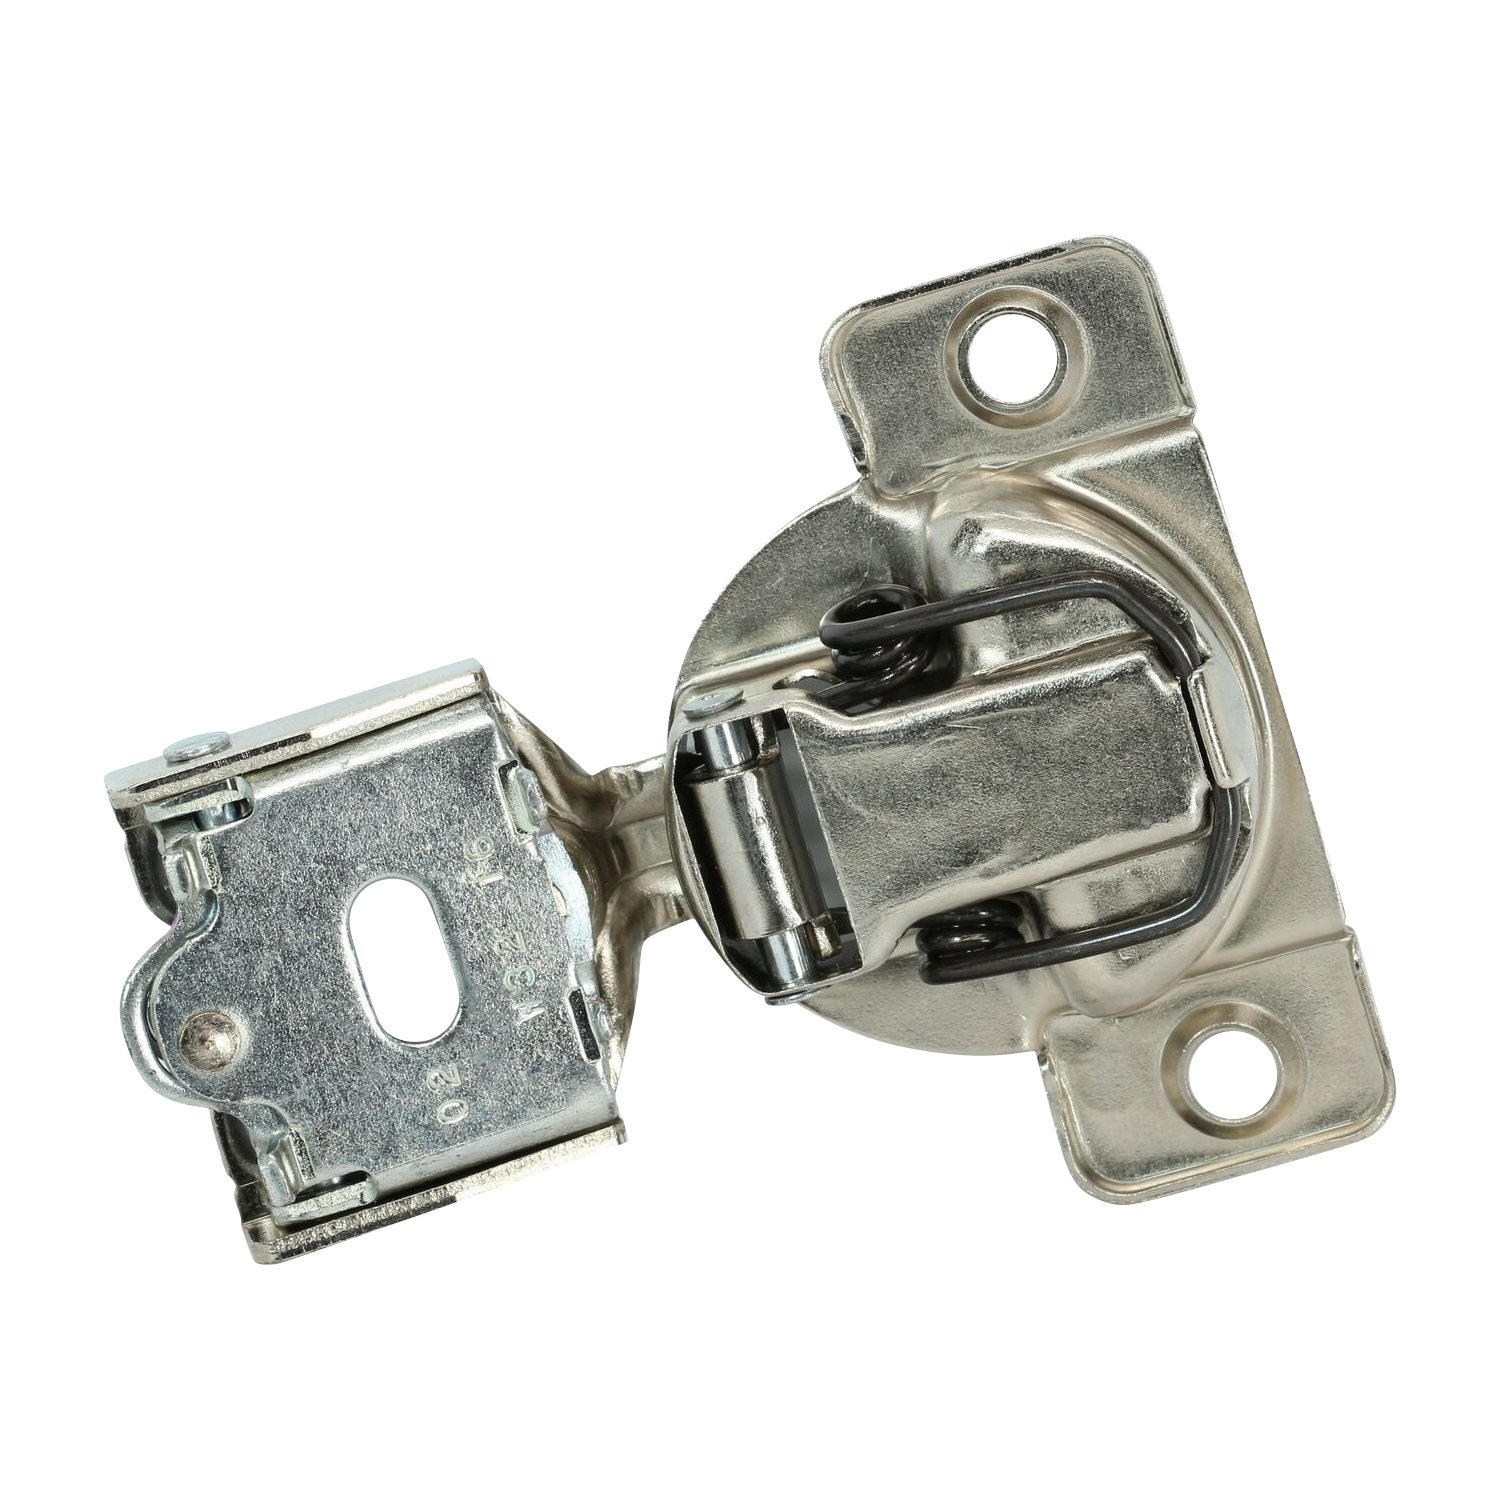 50 Pack Rok Hardware Grass TEC 864 108 Degree 1/4'' Overlay 3 Level Soft Close Screw On Compact Cabinet Hinge 04429A-15 3-Way Adjustment 45mm Boring Pattern by Rok (Image #5)